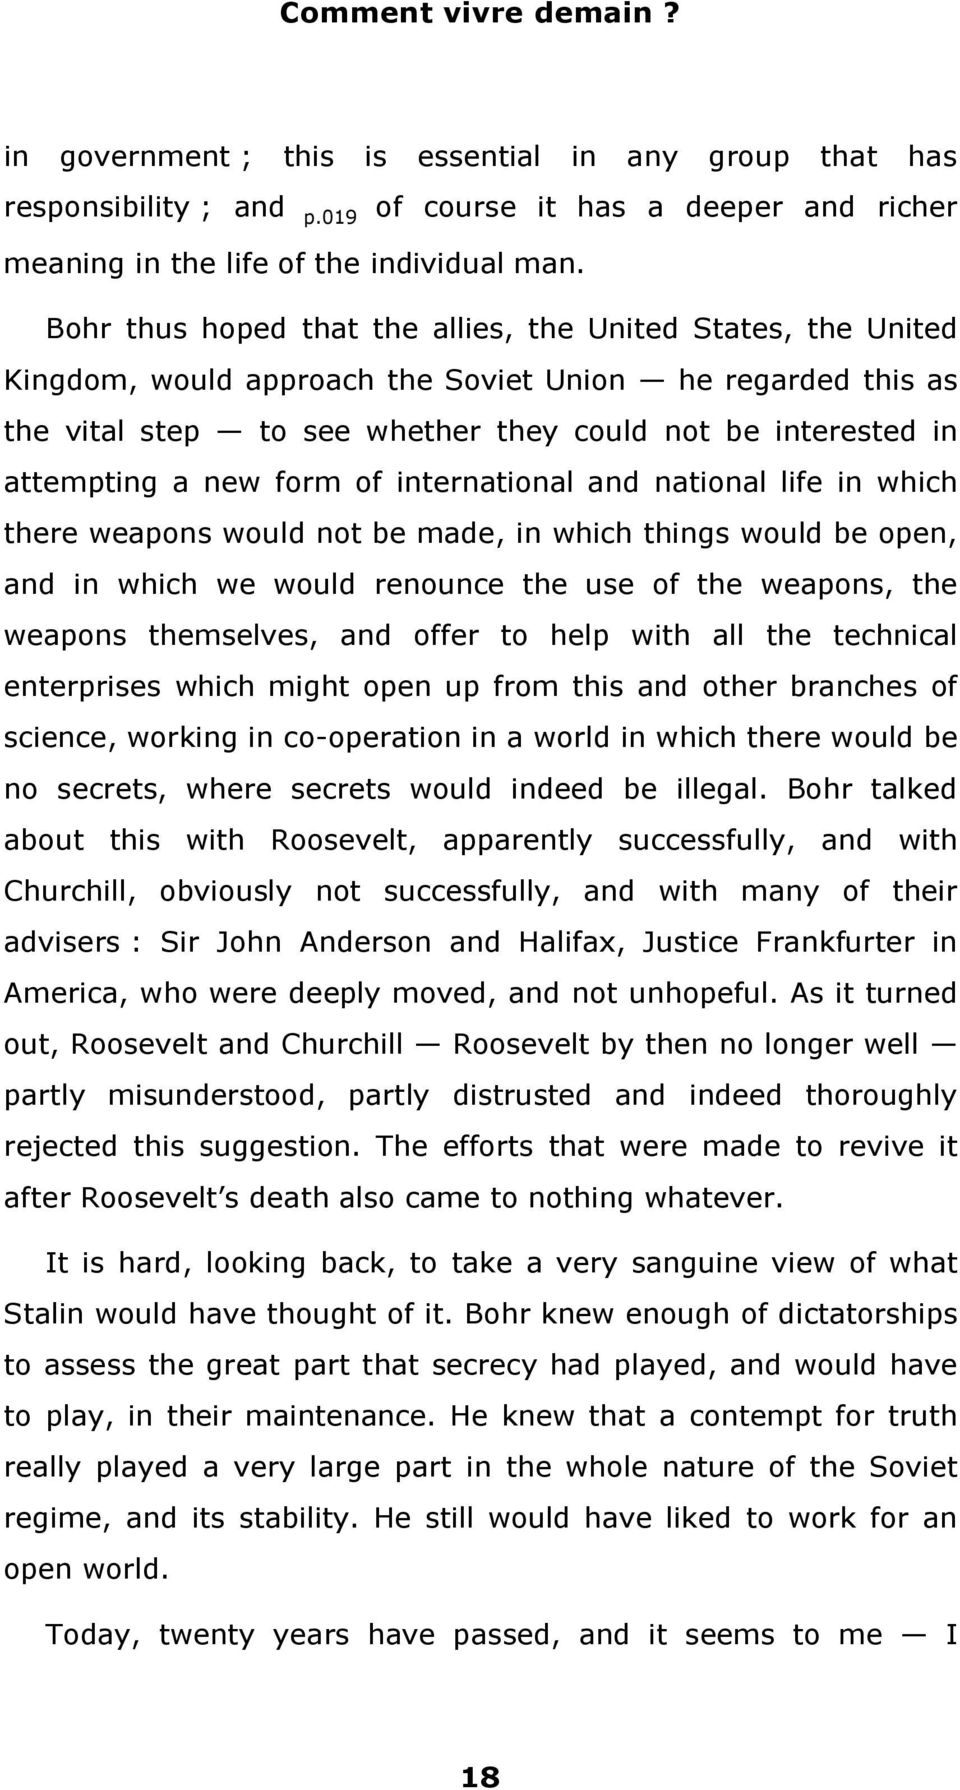 new form of international and national life in which there weapons would not be made, in which things would be open, and in which we would renounce the use of the weapons, the weapons themselves, and